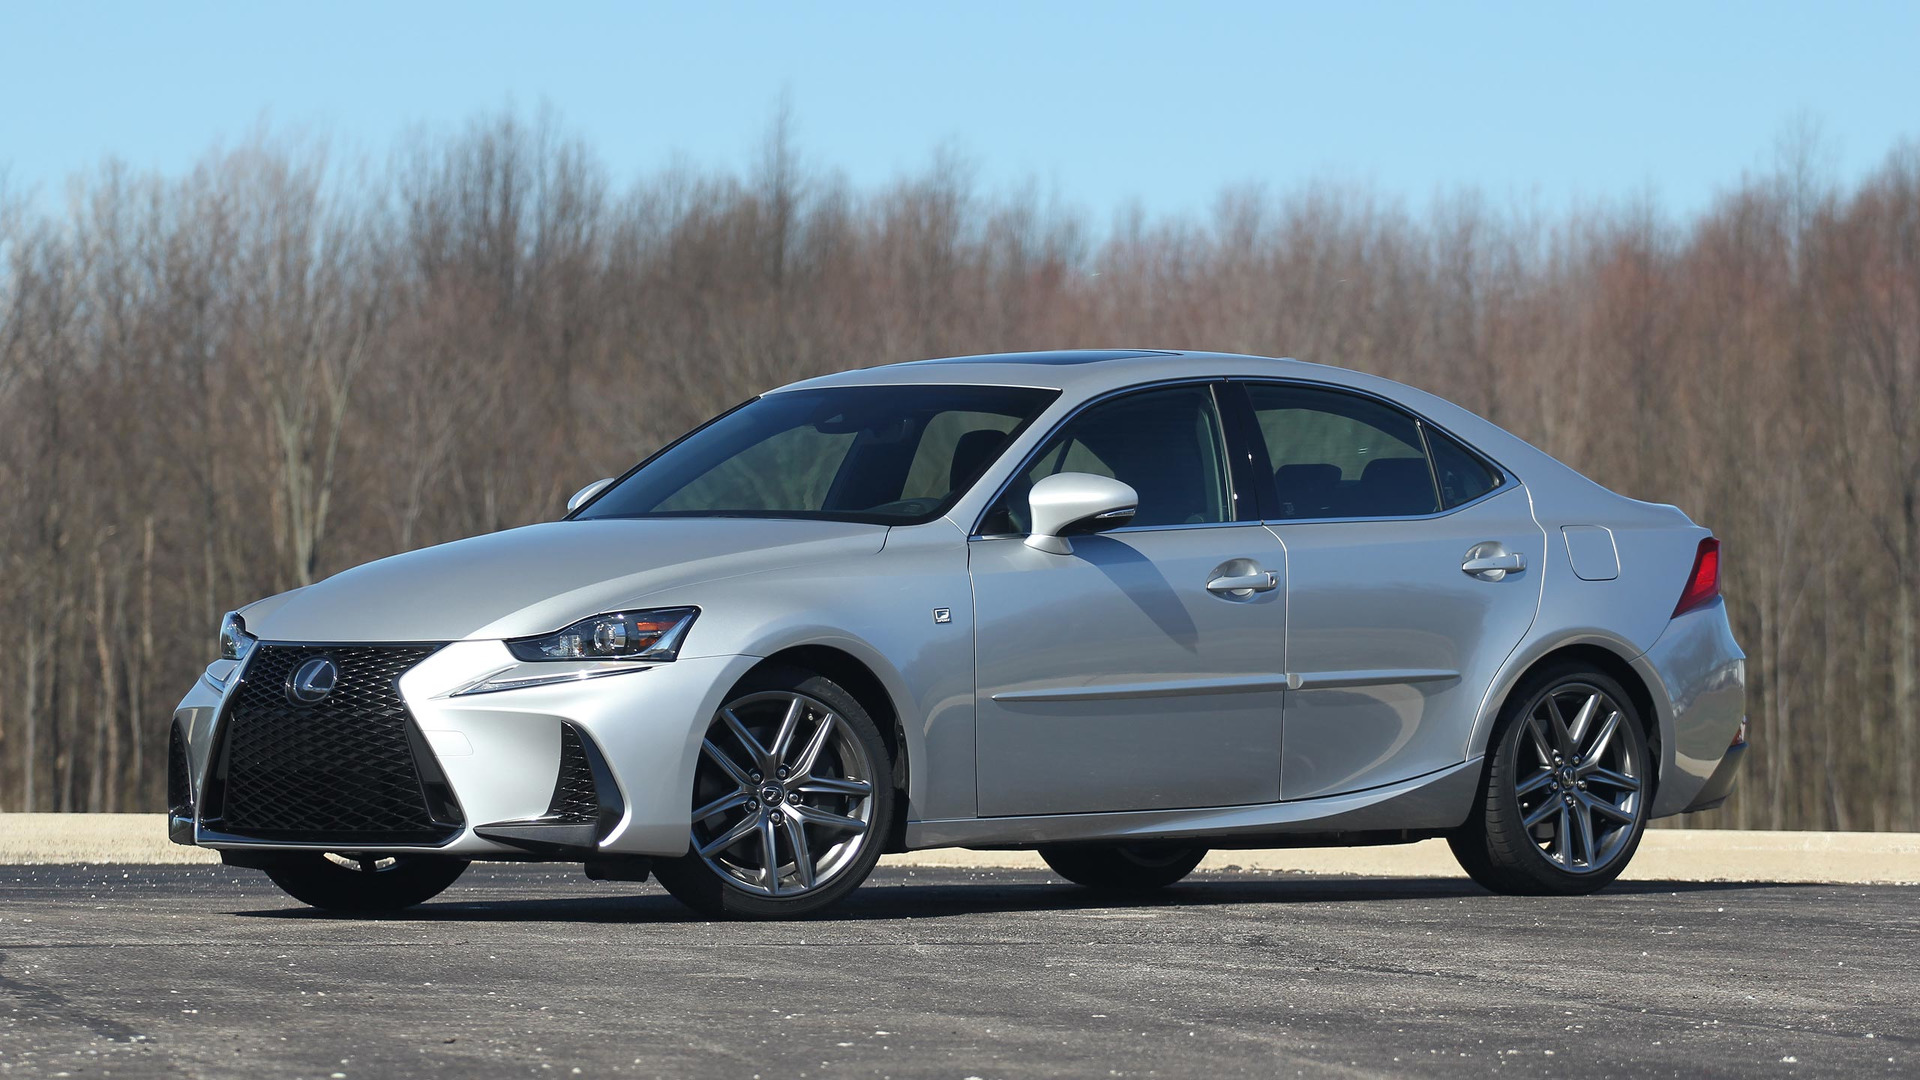 2020 Lexus IS350 Model